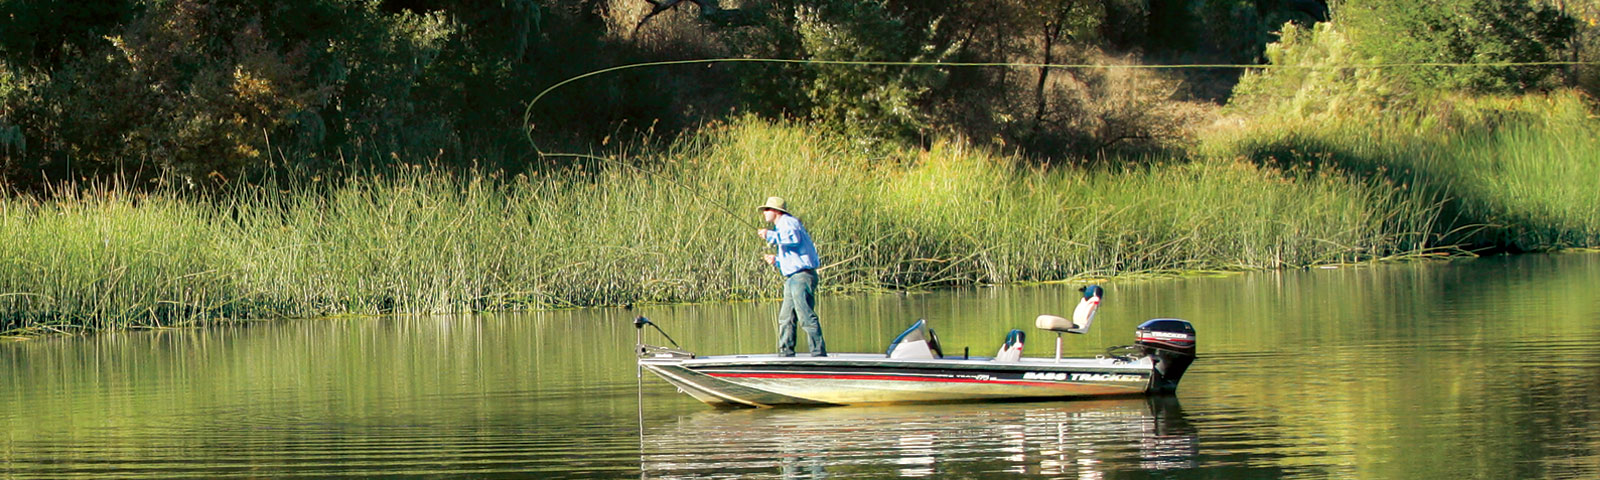 Fishing on Lake Alisal